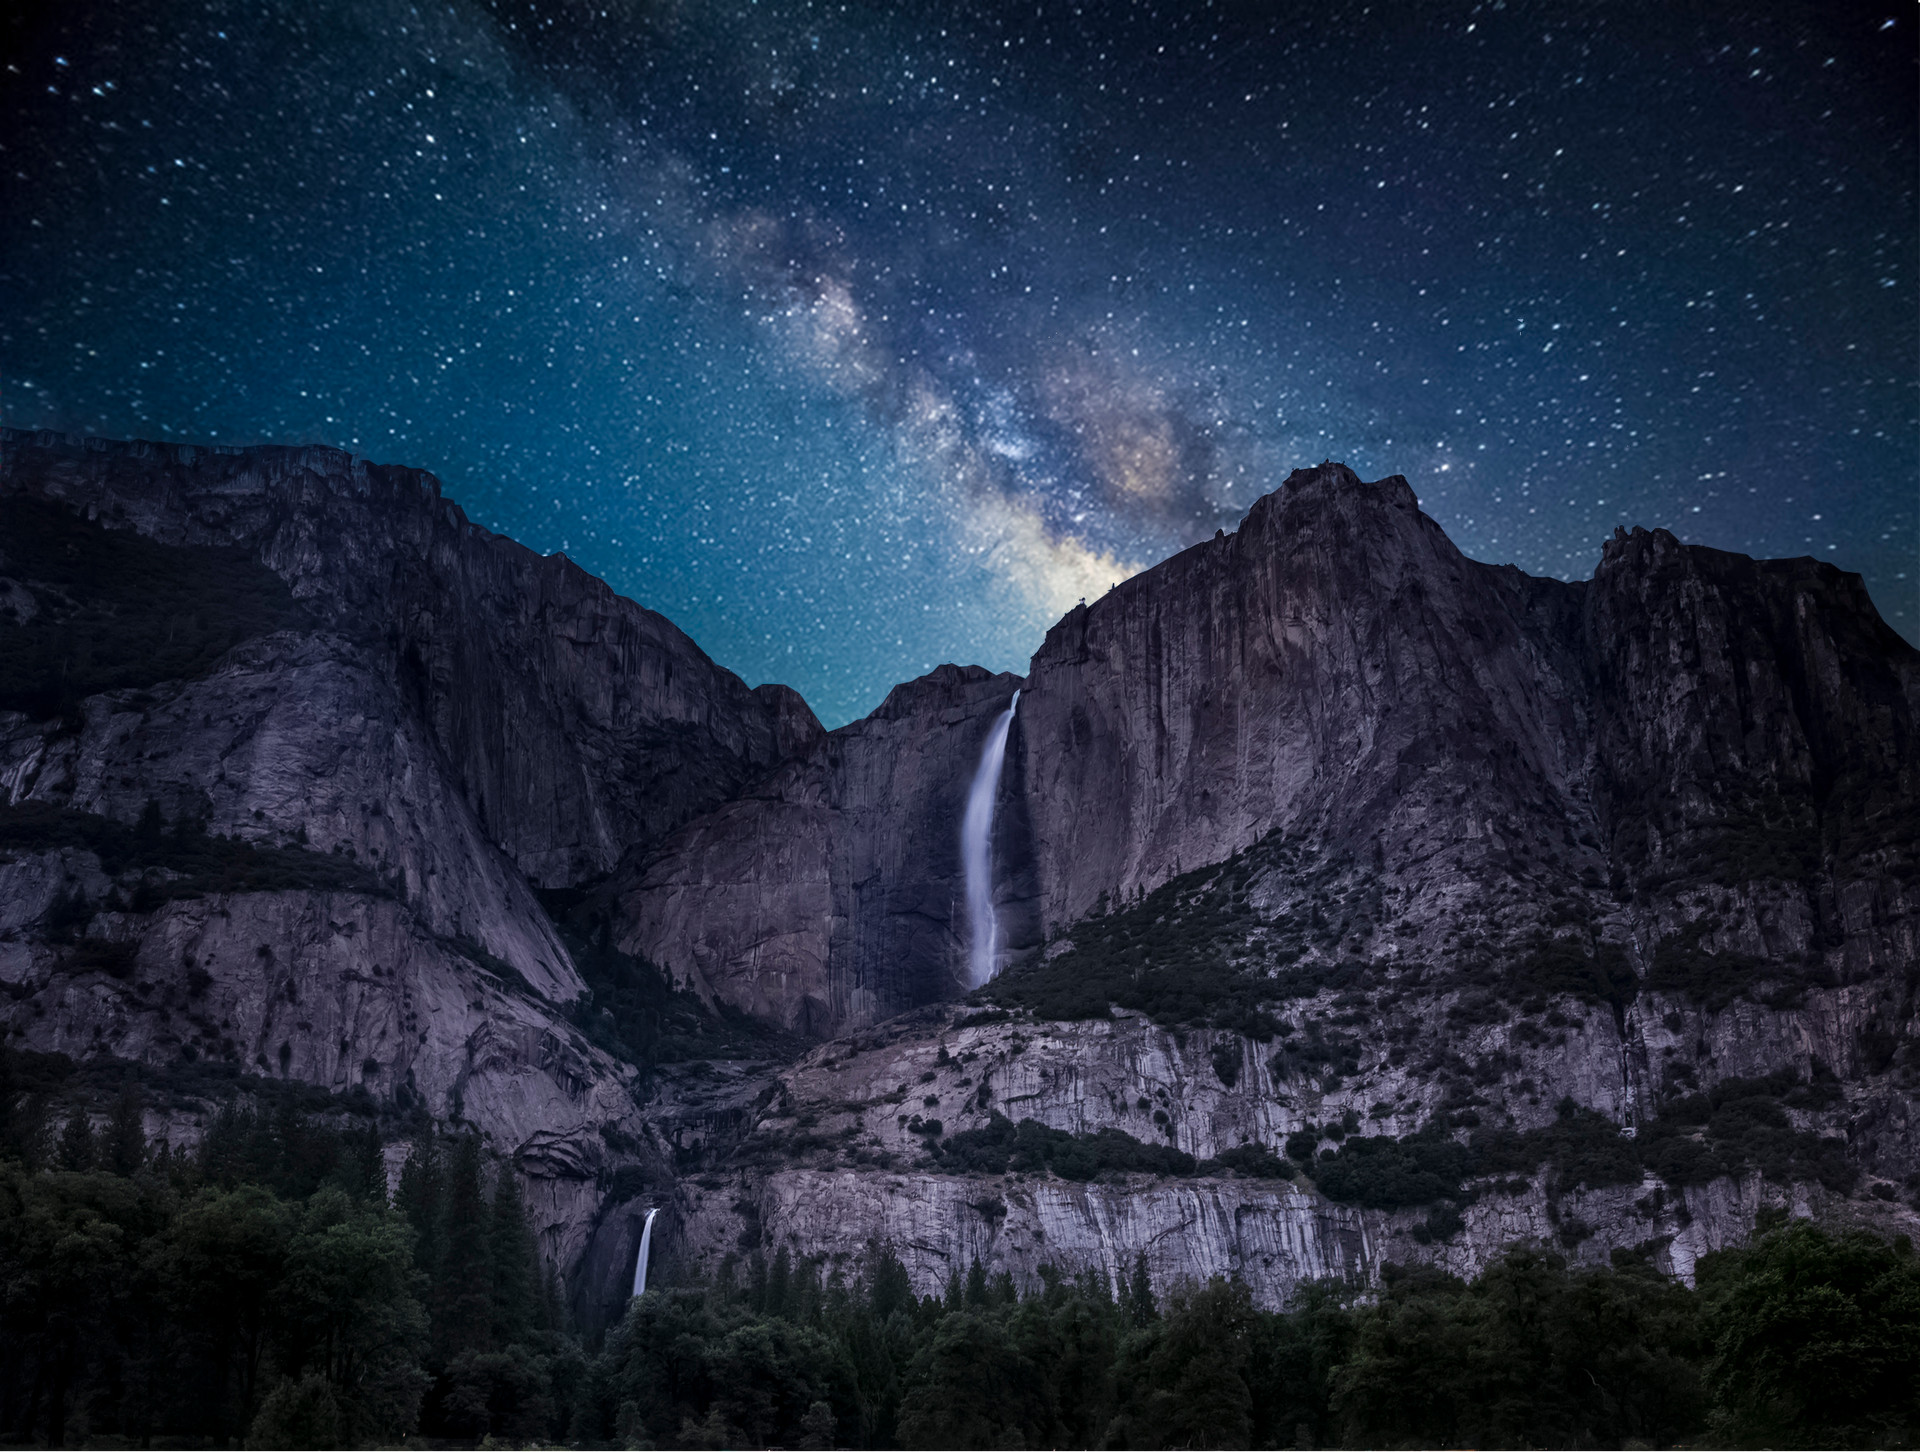 Greg Harlow Media Photography Yosemite Falls Milky Way, Yosemite